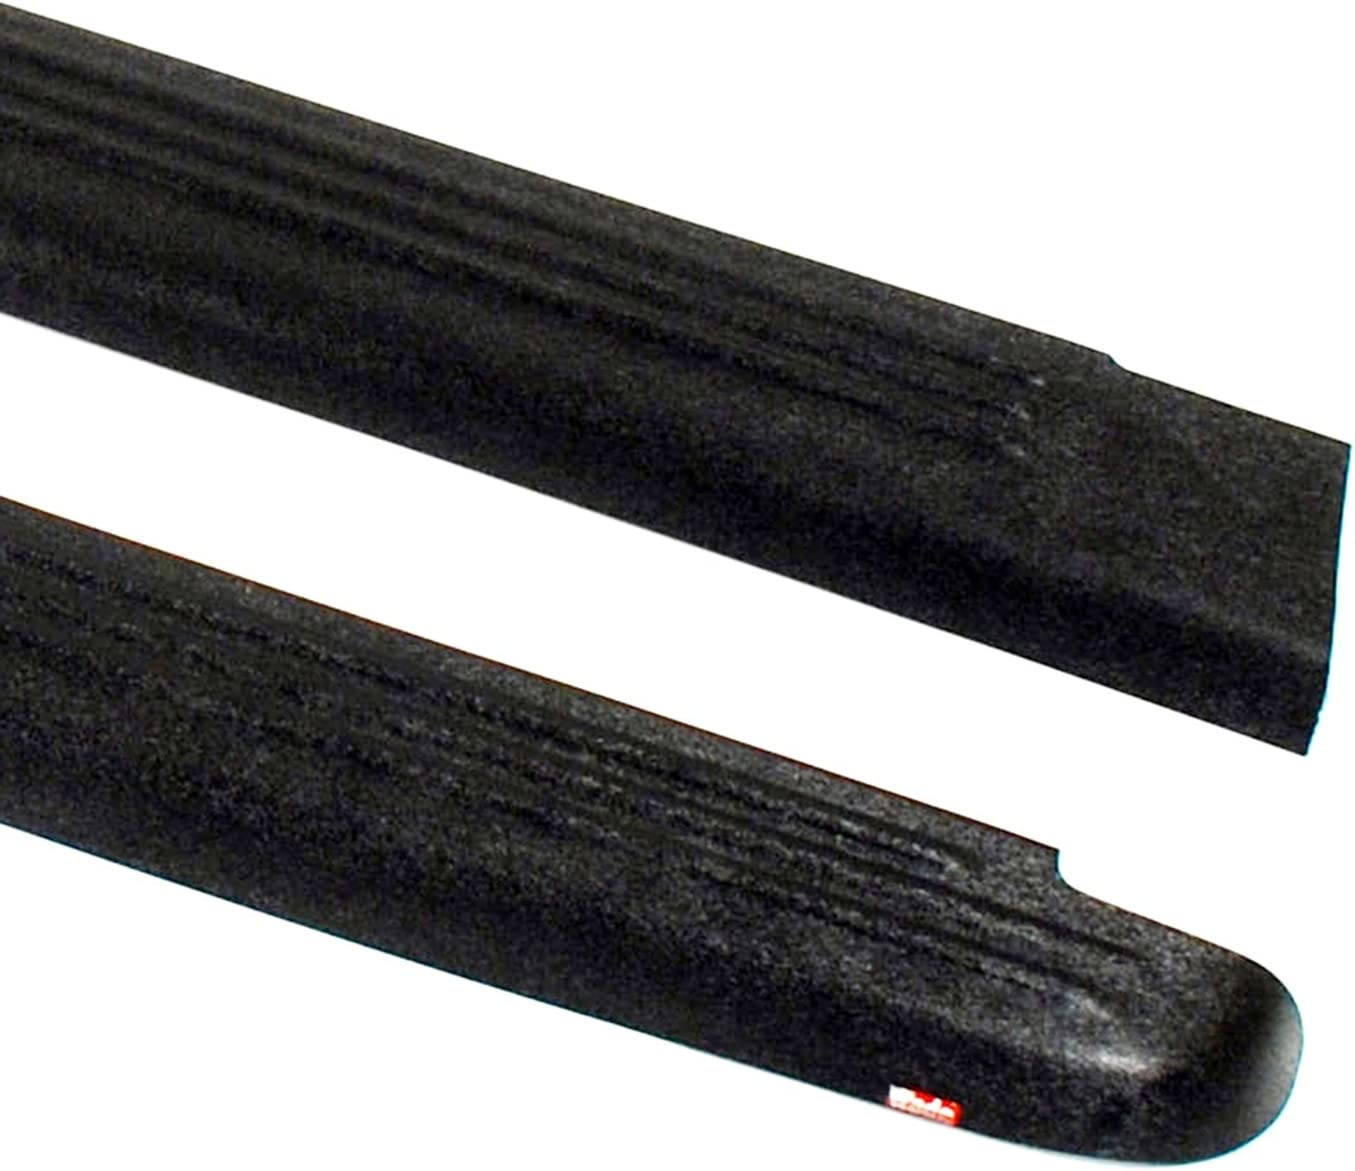 Set of 2 Wade 72-00801 Truck Bed Rail Caps Black Ribbed Finish without Stake Holes for 1998-2004 Nissan Frontier King Cab